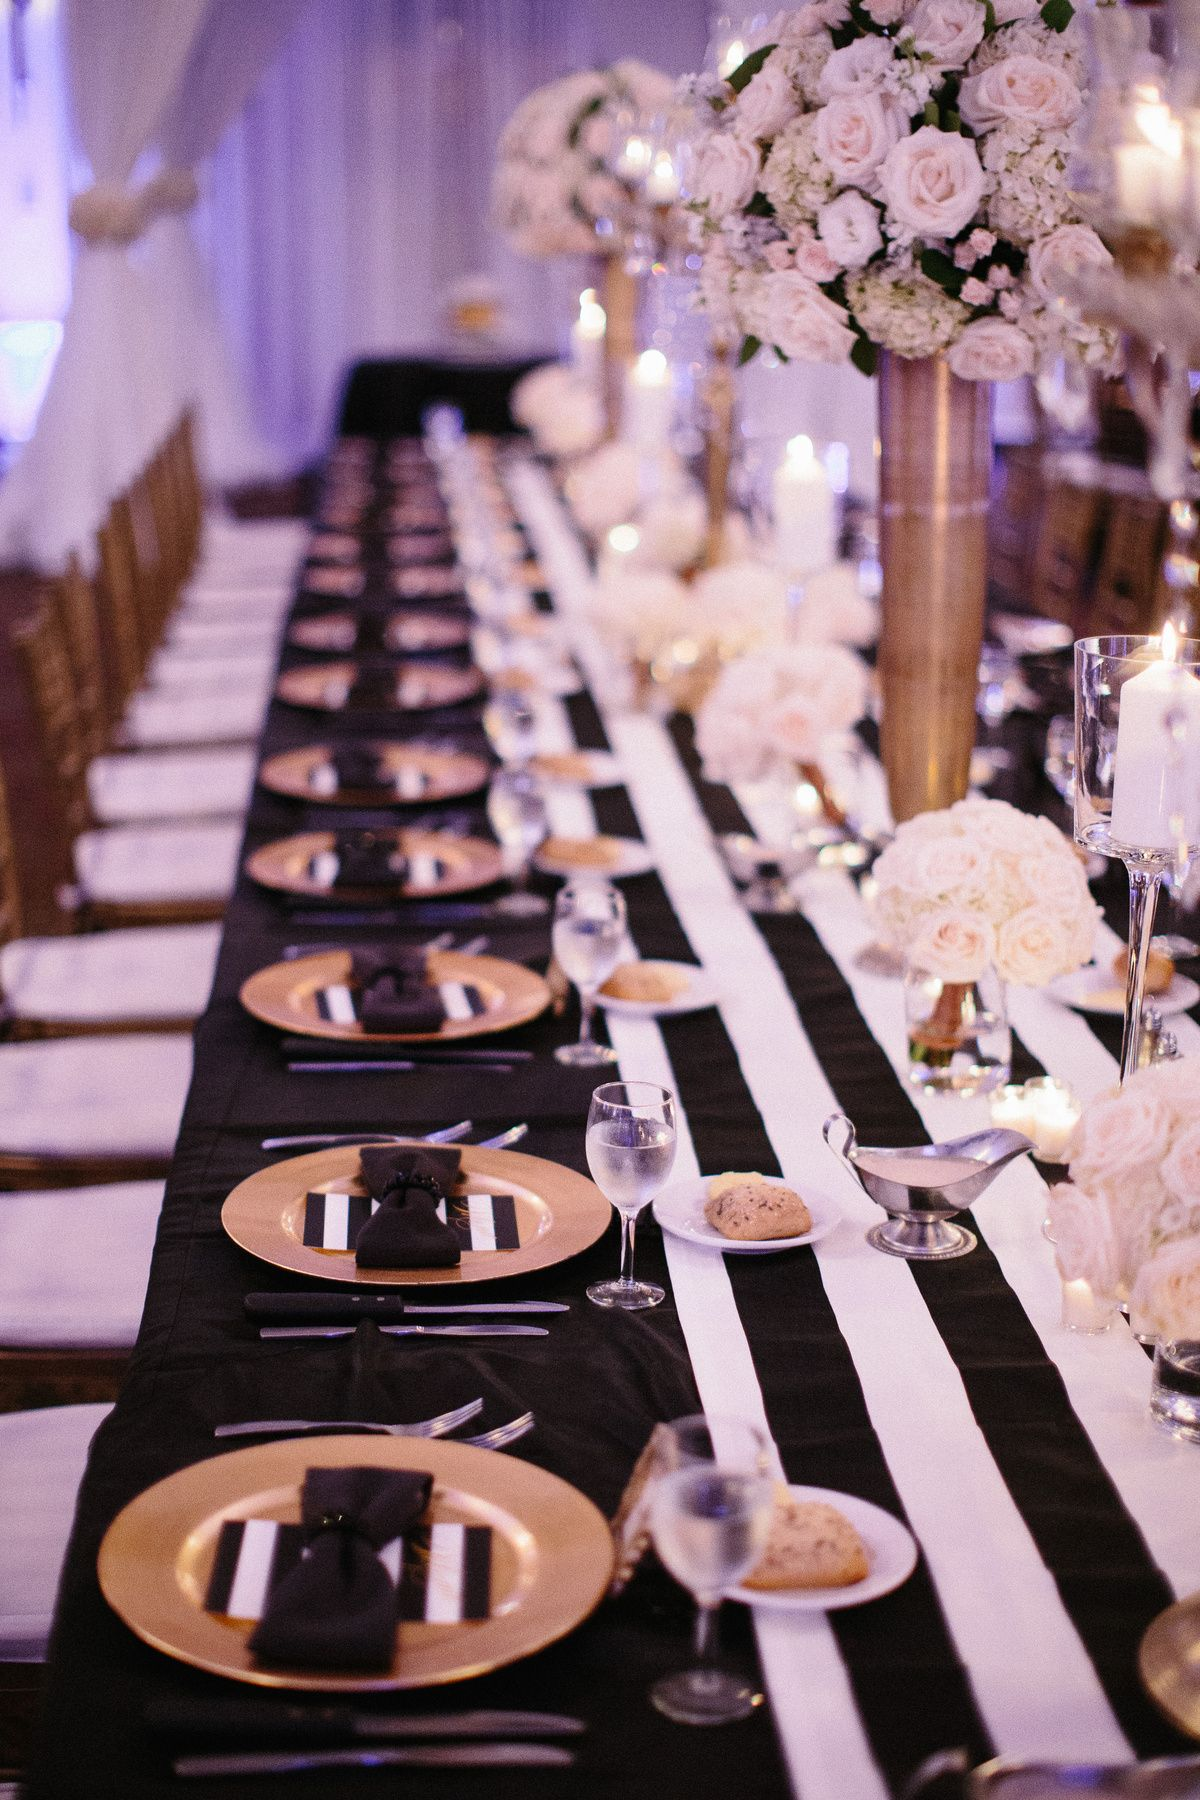 black wedding reception food ideas%0A black and white striped head table runner with bow tie tuxedo napkins and  gold chargers     Wedding Reception CenterpiecesBallroom Wedding ReceptionDiy